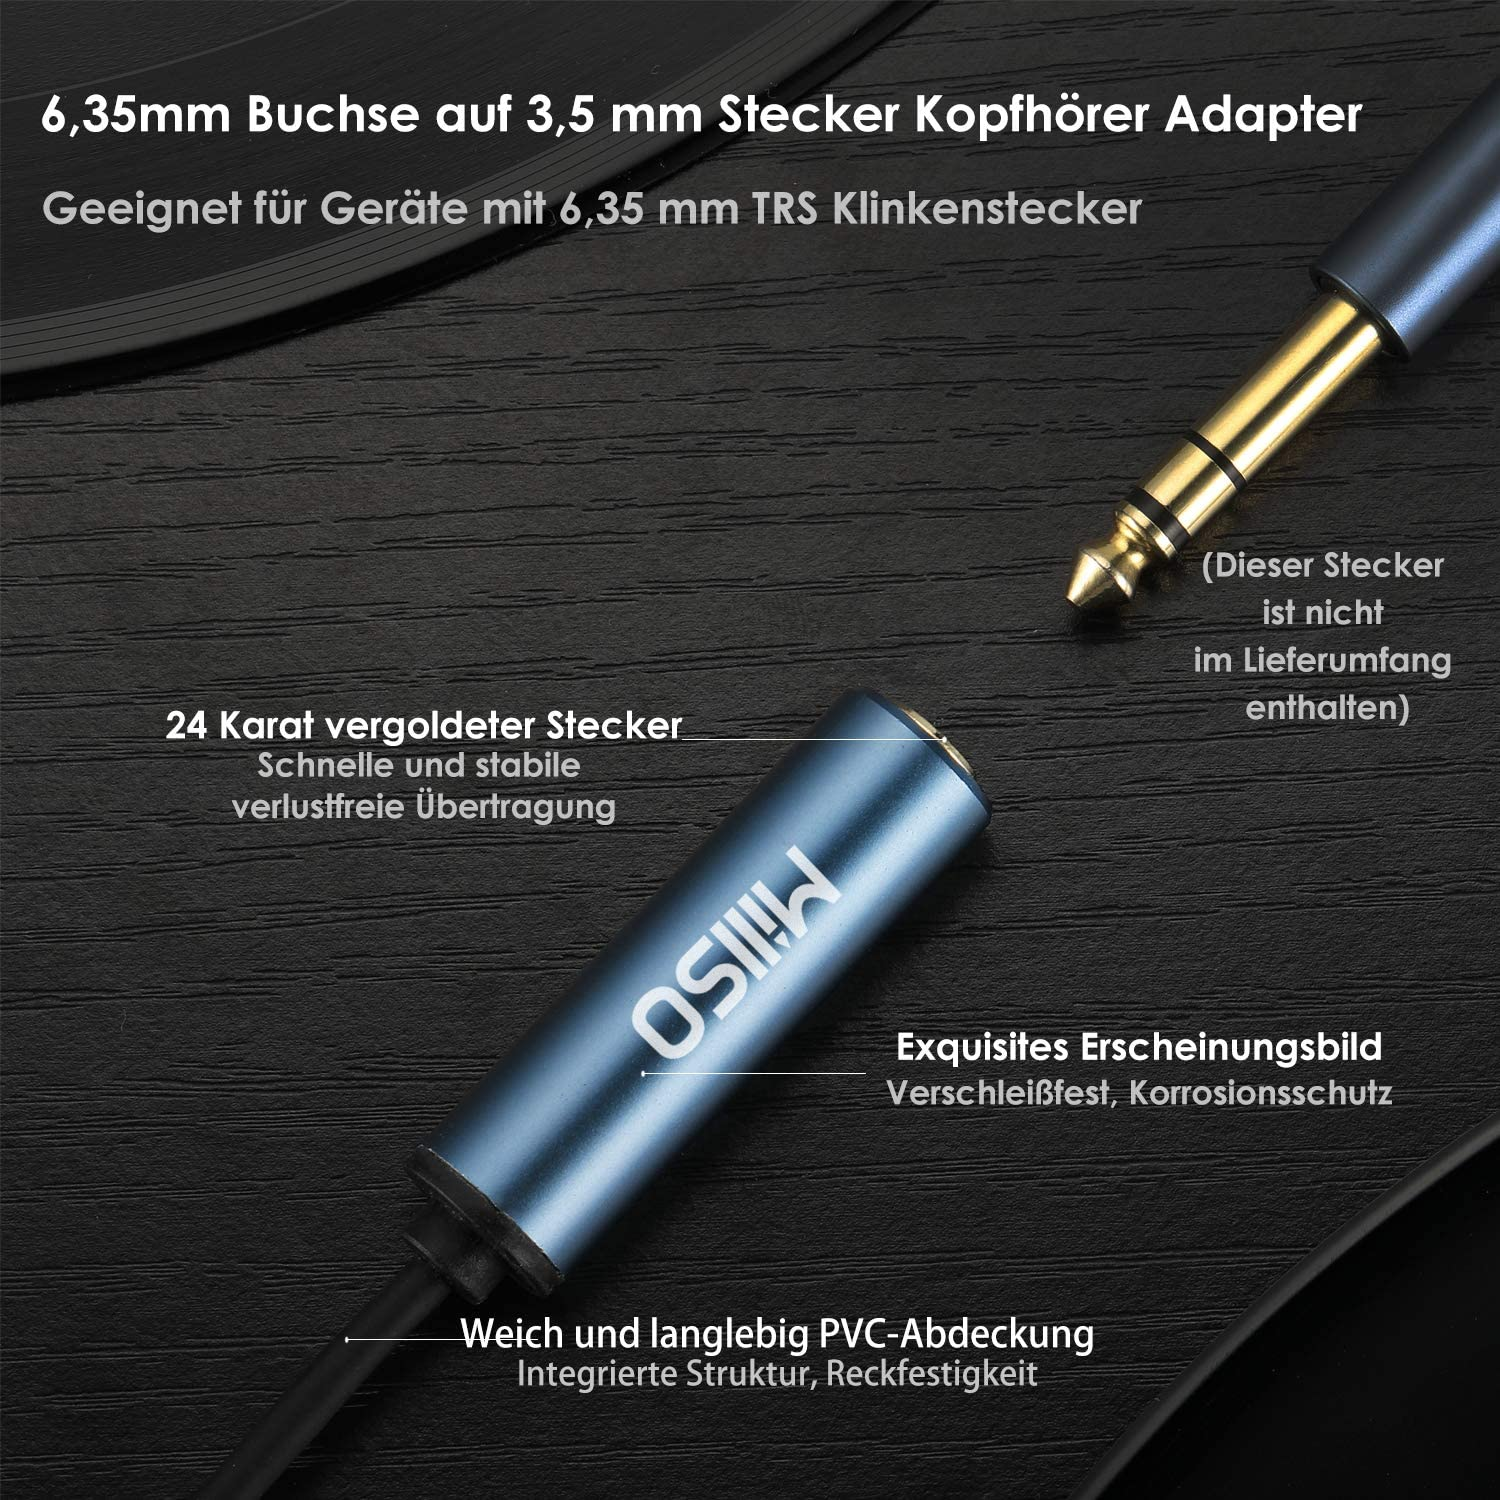 Amplifiers 30CM//12 inch MillSO Headphone Jack Adapter 3.5mm 1//8 inch to 6.35mm 1//4 inch Jack TRS Stereo Audio Aux Adapter compatible for Home Audio Piano Home Theater Devices or Mixing Console